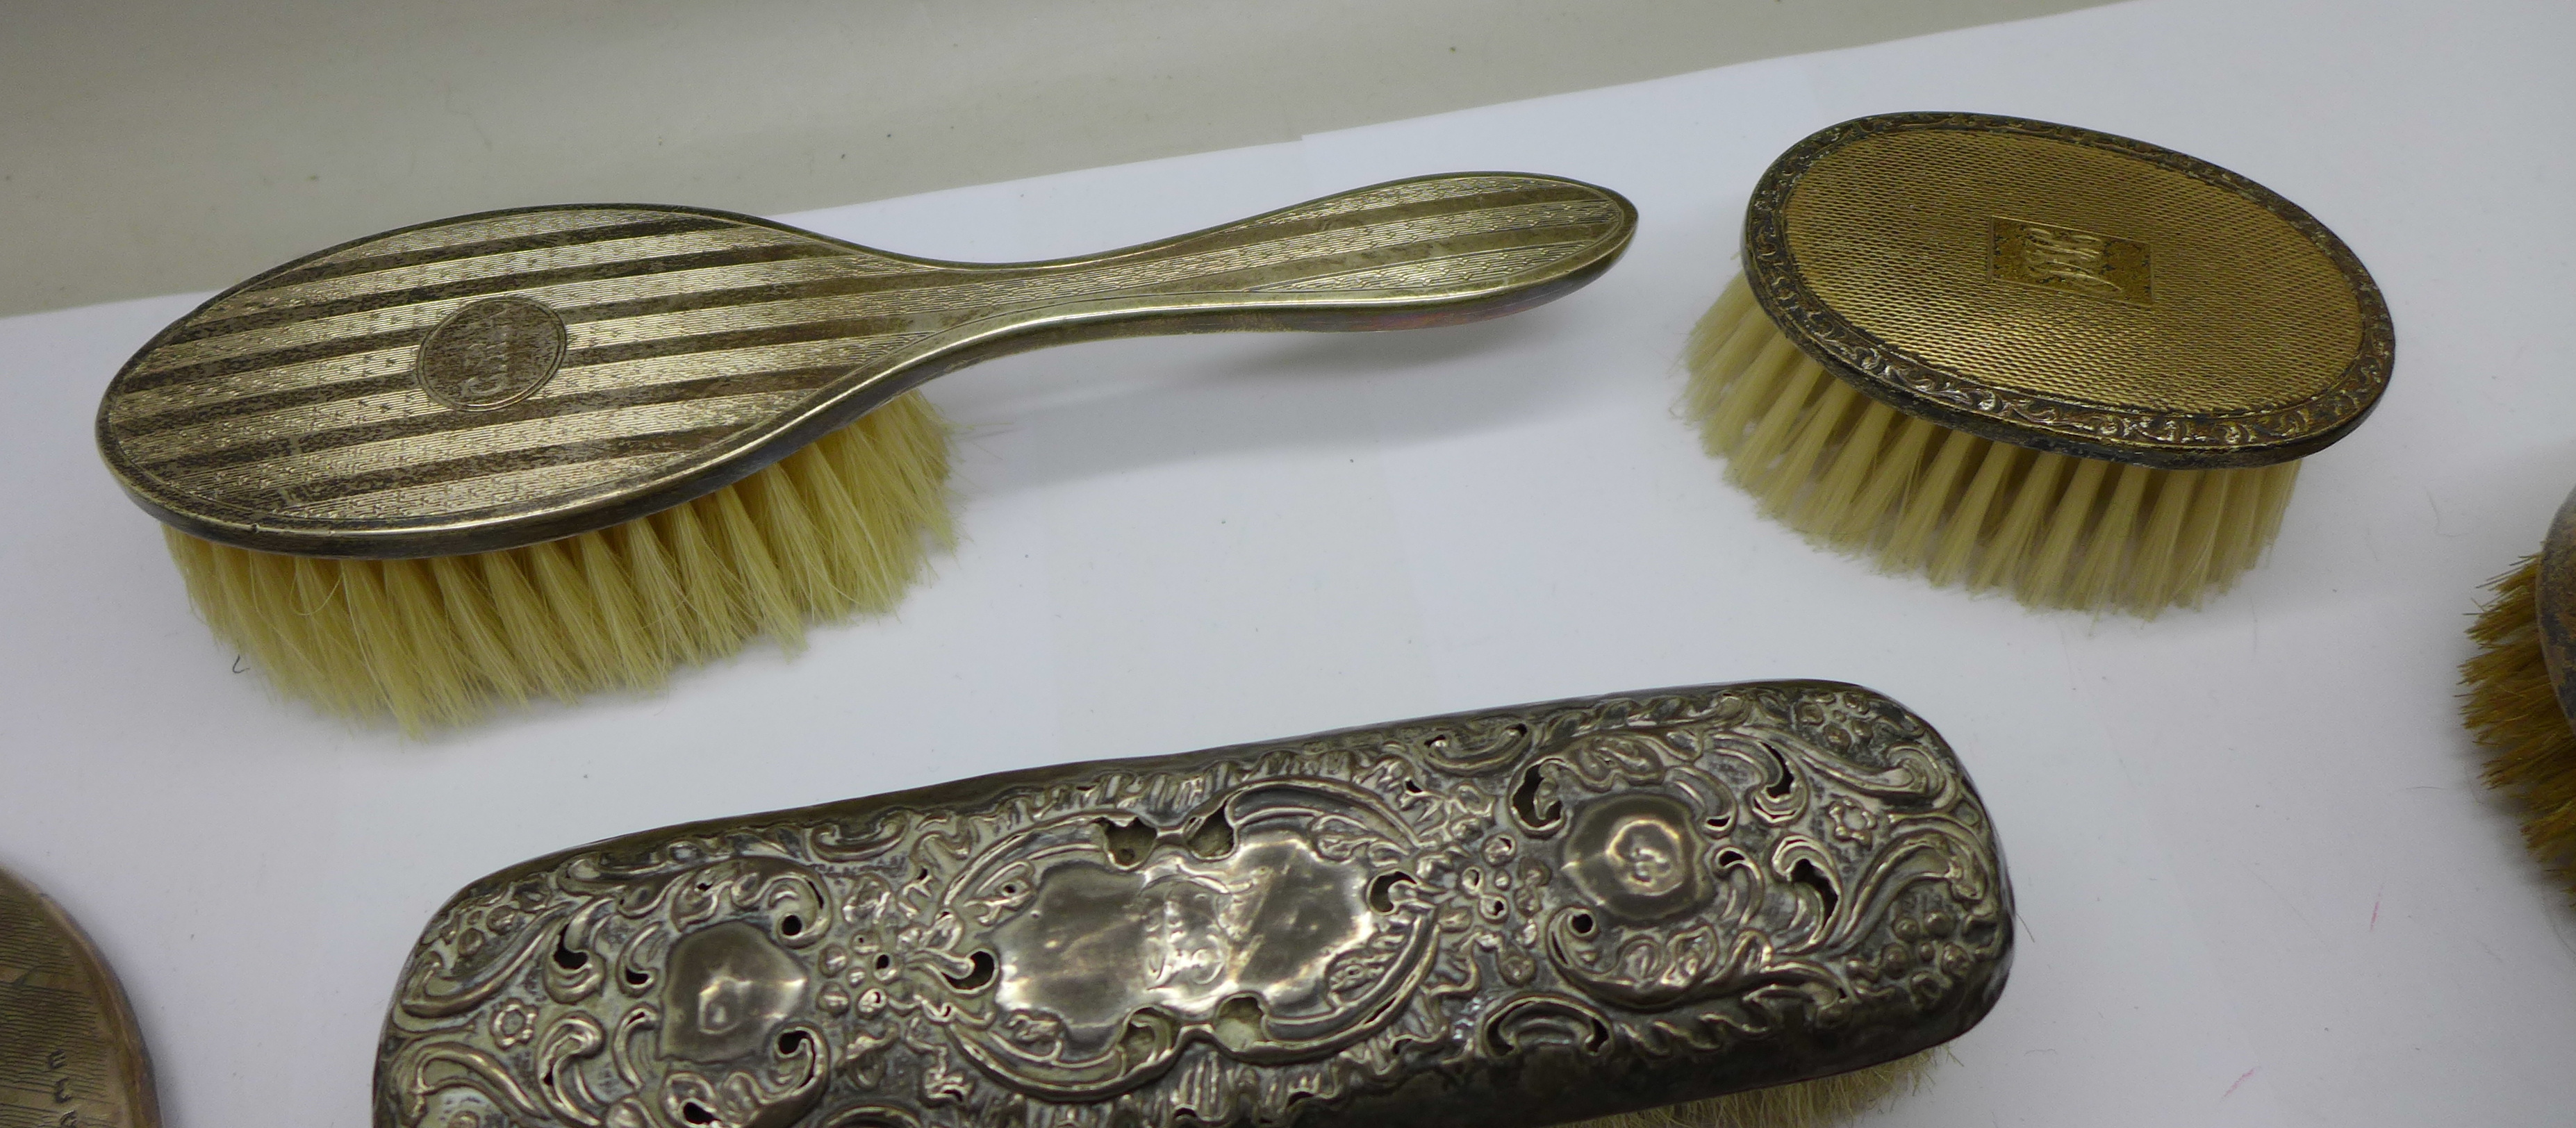 Silver brushes (two cased), comb and a hand mirror - Image 3 of 9